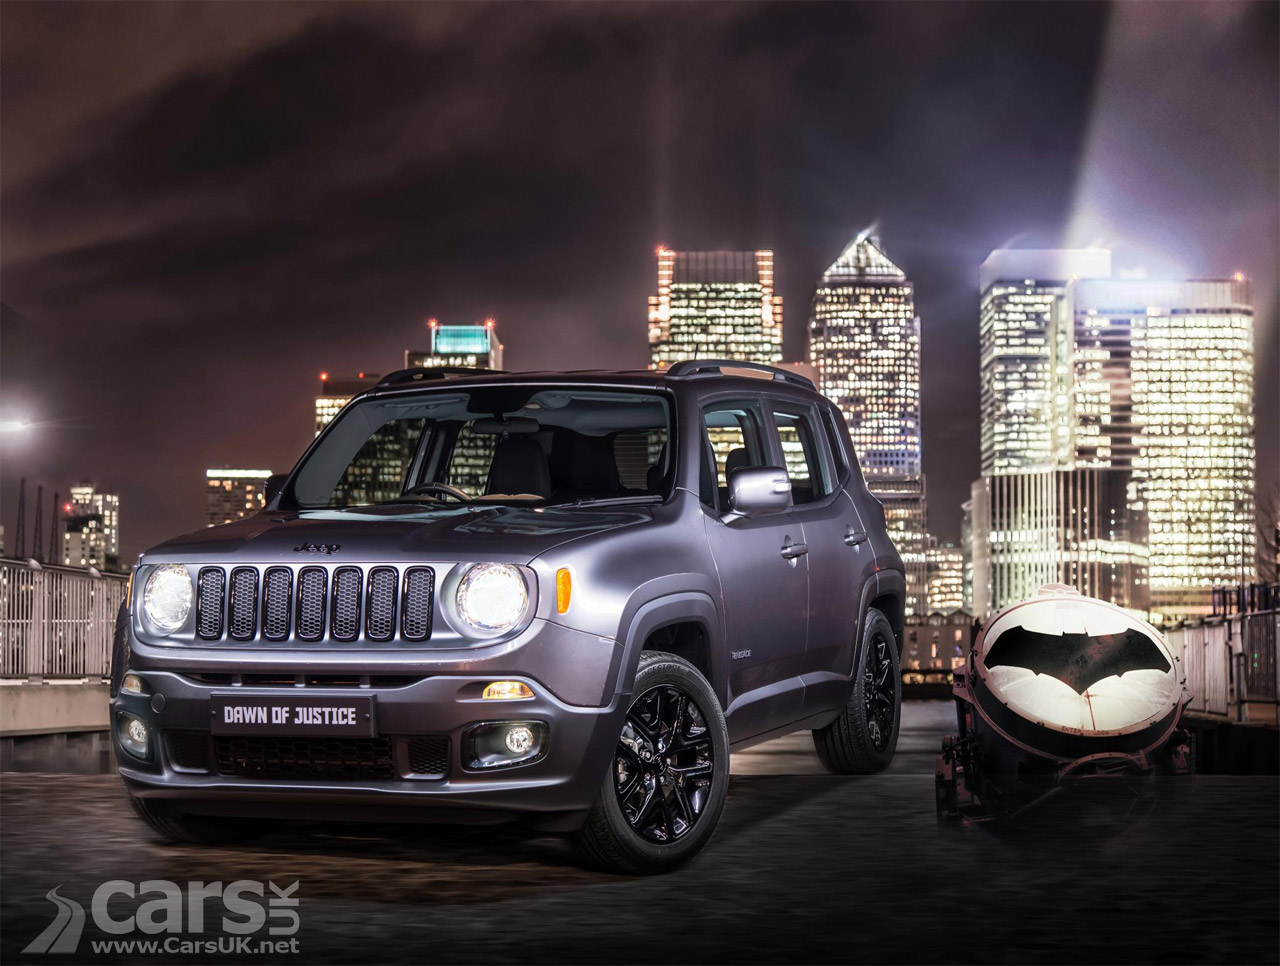 New Jeep Renegade >> Jeep Renegade Dawn of Justice arrives to cash-in on Batman ...